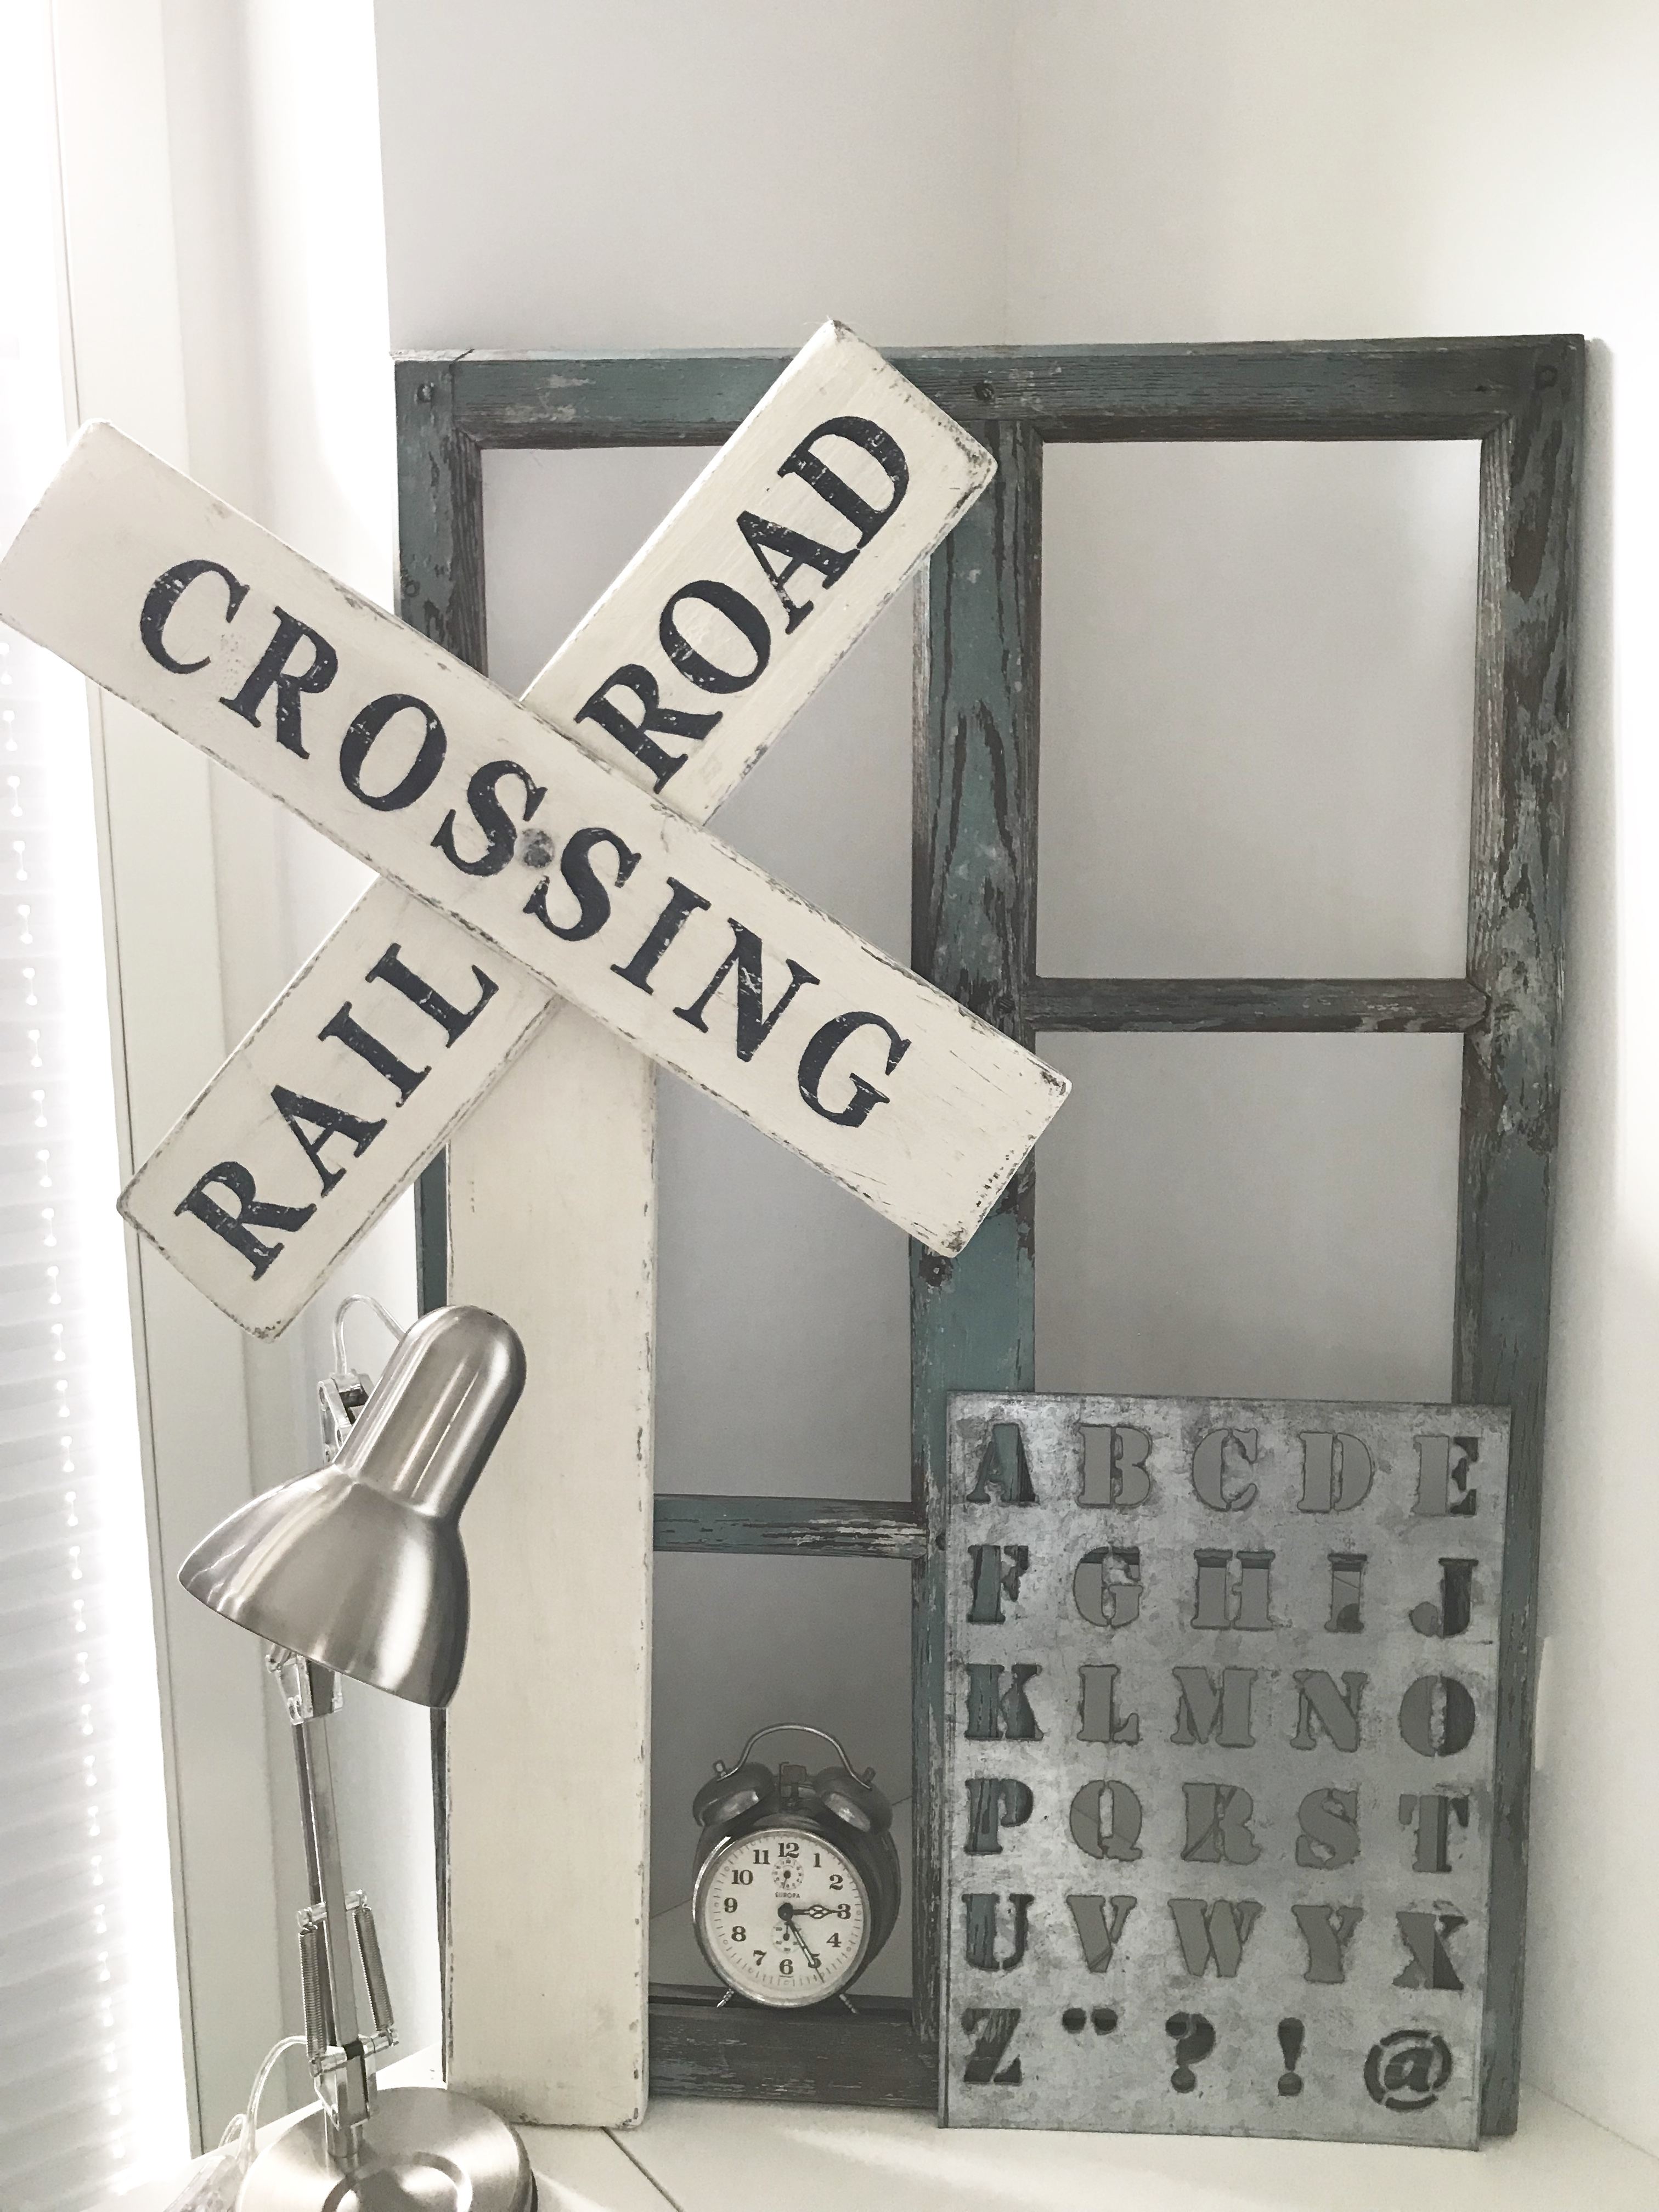 Railroad-Crossing Holzschild